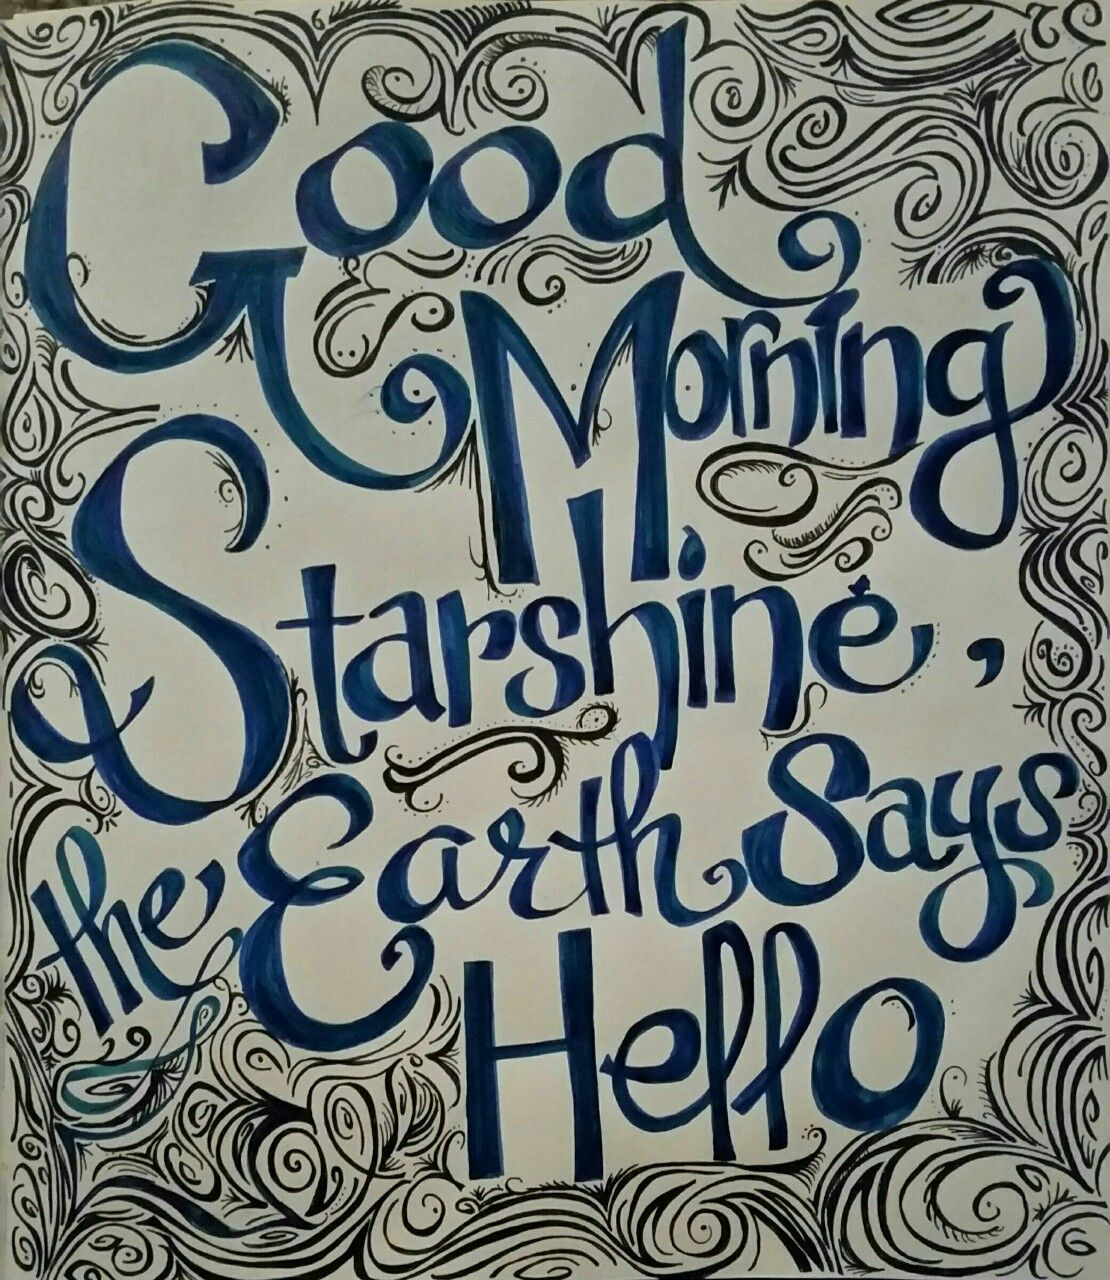 """""""Hello Starshine, the Earth says hello."""" Line from Willa Wonka(Tim Burton version) such a cute quote ladened with layers of meaning. My first attempt at original layout, mixed mediums. Mix of..."""